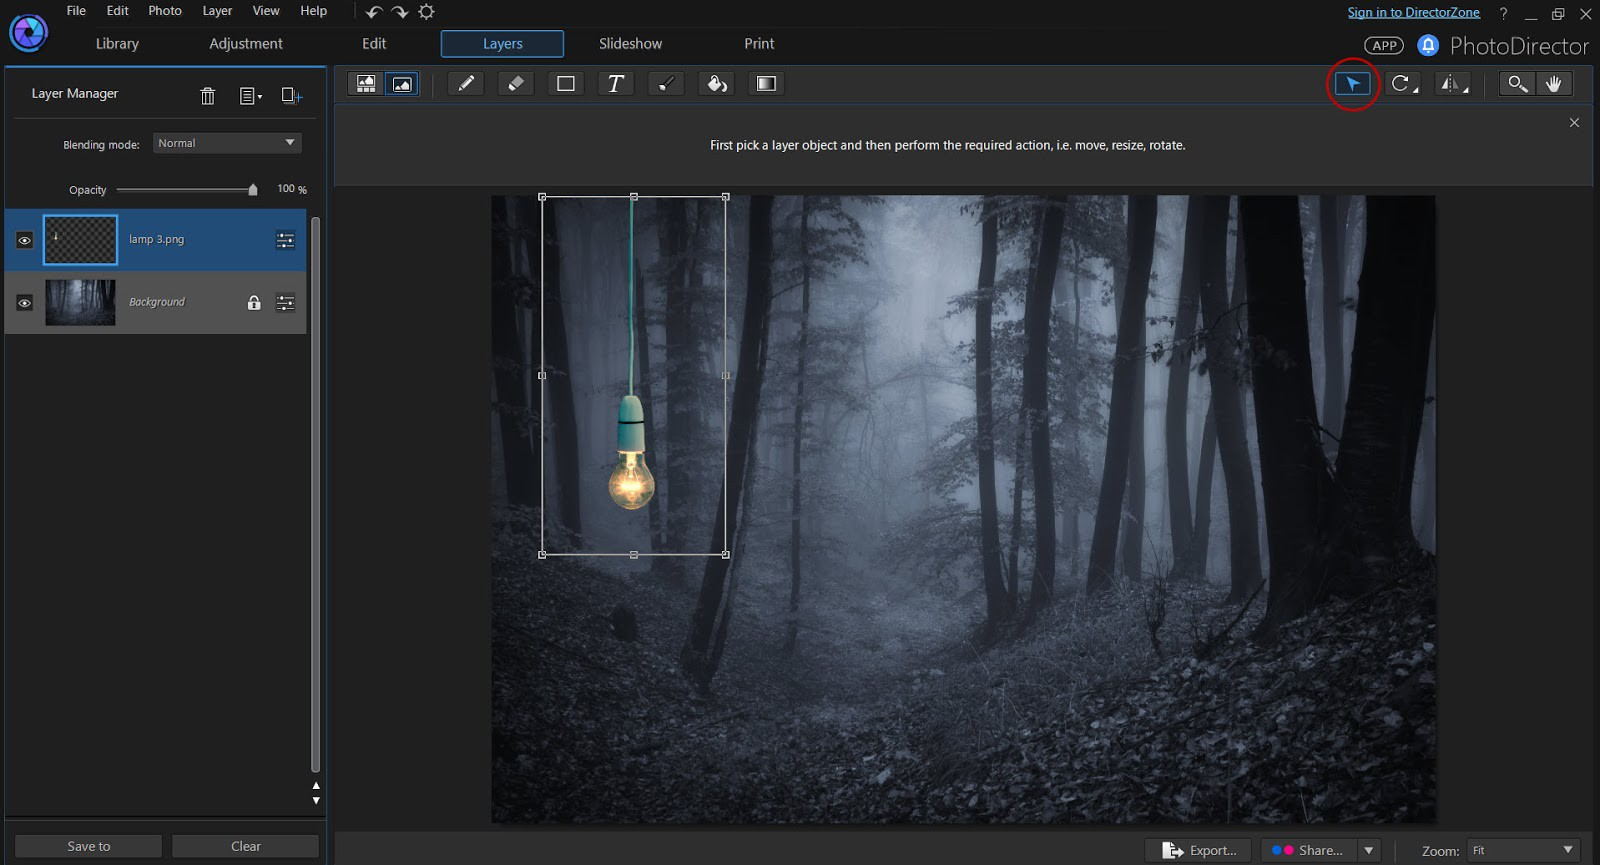 Background image opacity without affecting text -  Meaning That The Background Is Removed And Transparent So We Can Simply Reposition And Resize The Lamp On Top Of The Background Image Of The Forest